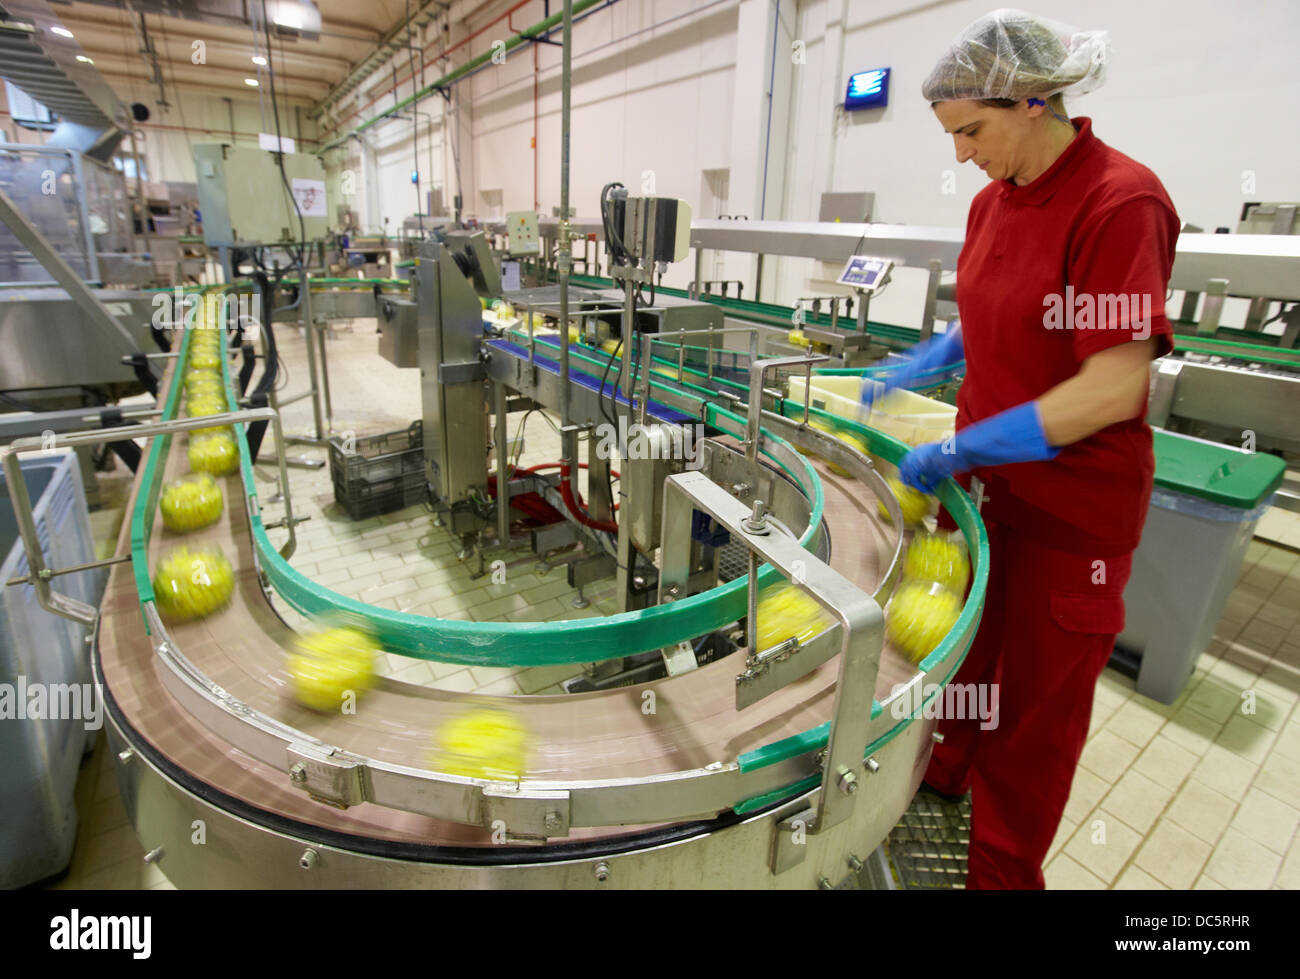 Production line of canned vegetables and beans in glass bottle, Corn, Maize, Canning Industry, Agri-food, Logistics - Stock Image